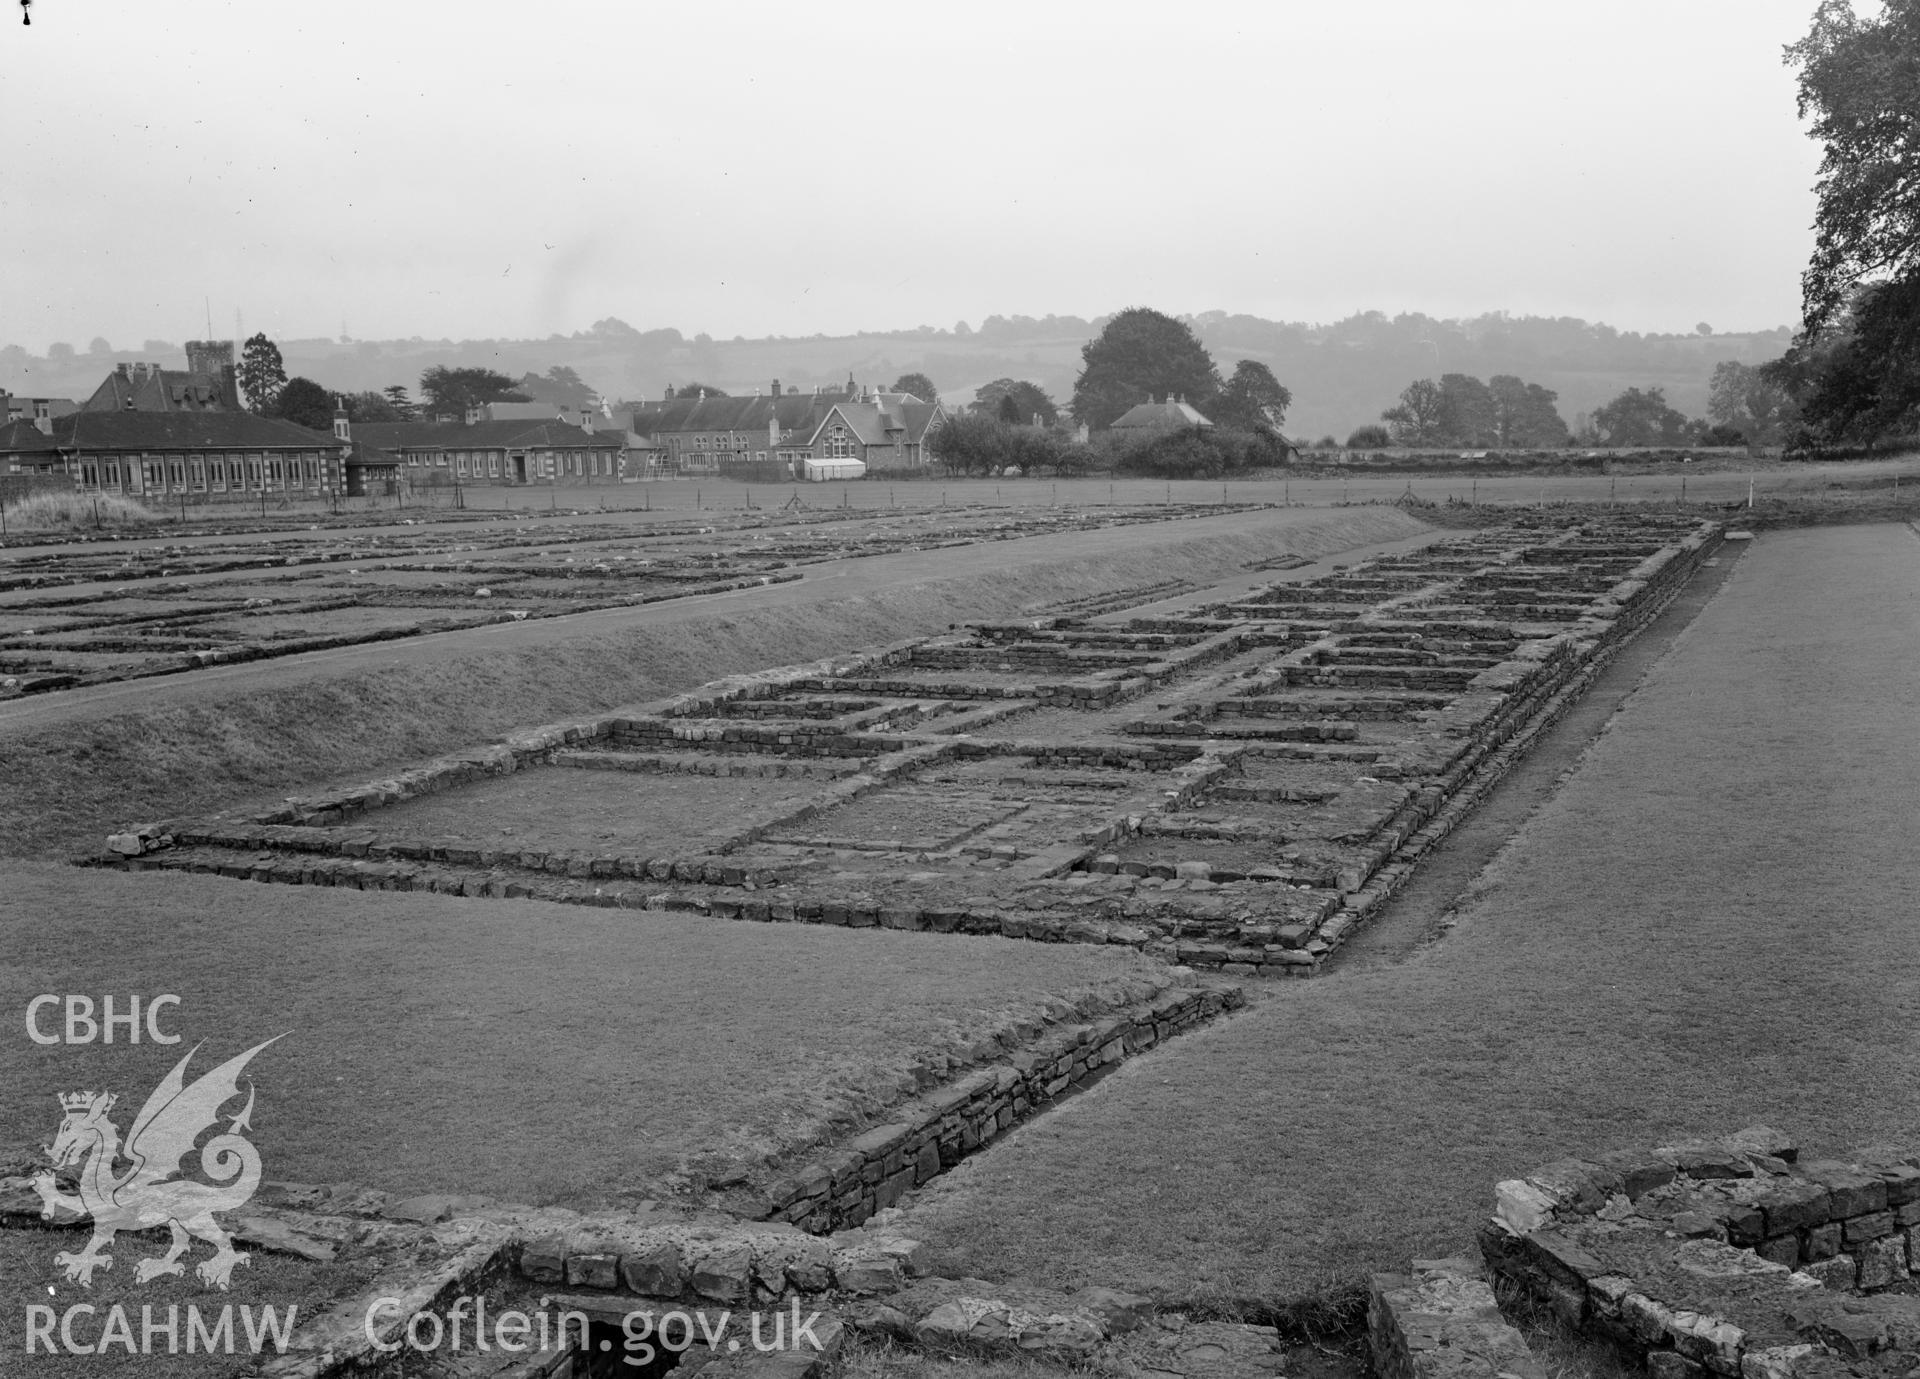 D.O.E photographs of Caerleon Prysg Field Barracks.